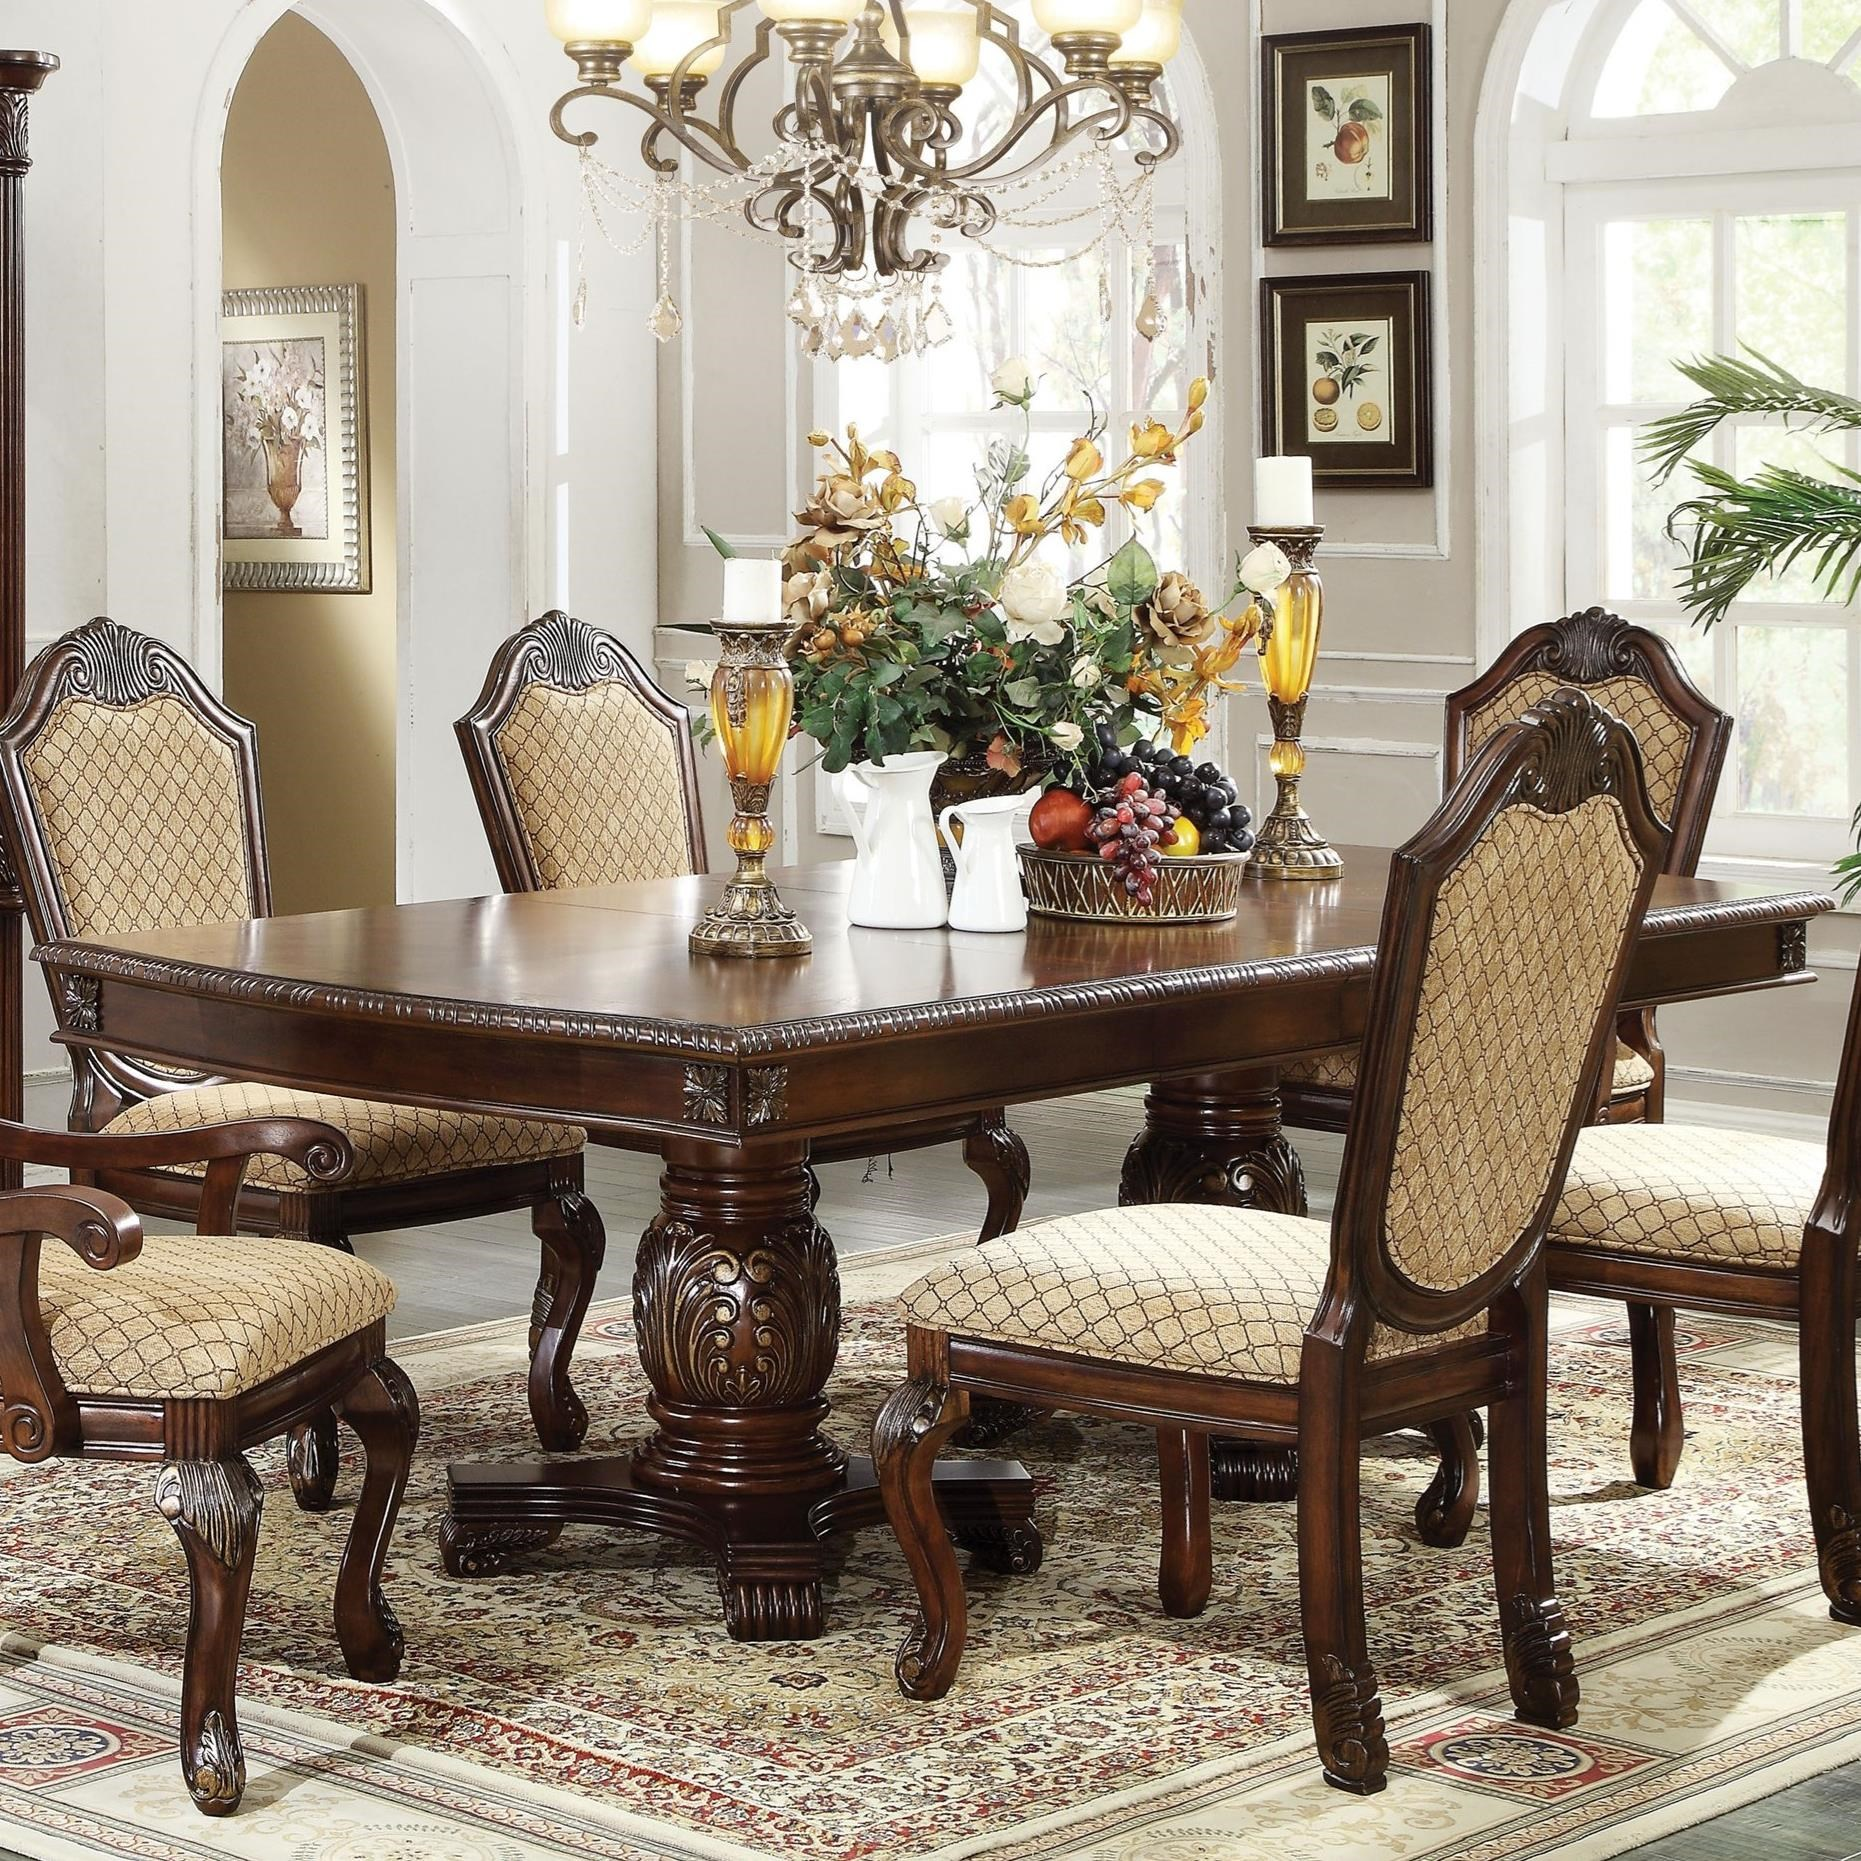 Acme Furniture Chateau De Ville Rectangle Double Pedestal Dining Table With Leaves Rooms For Less Dining Tables